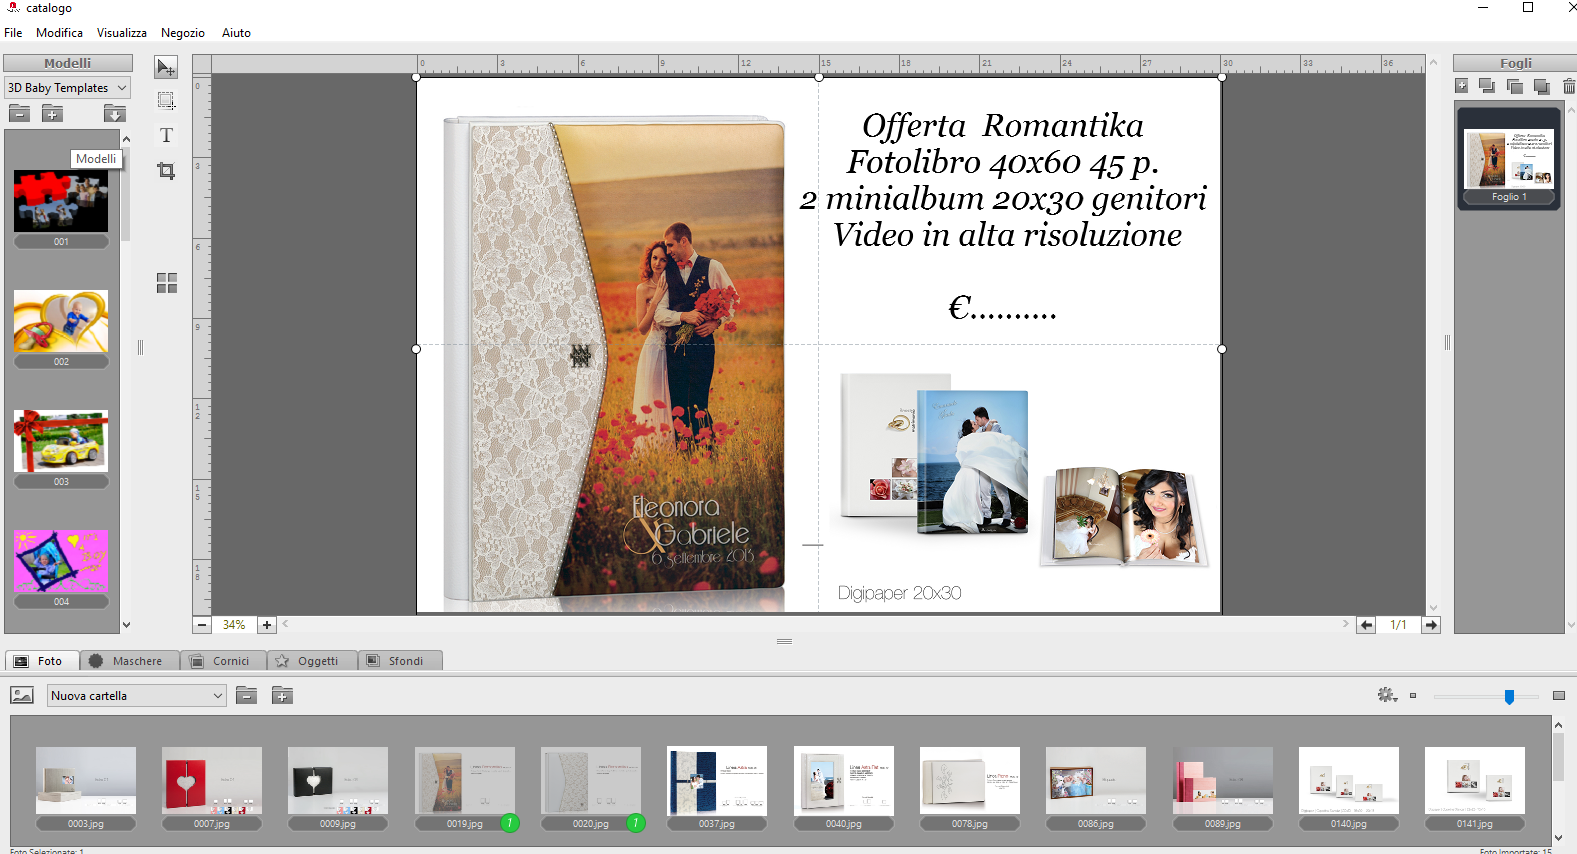 Crea Catalogo - Step 2